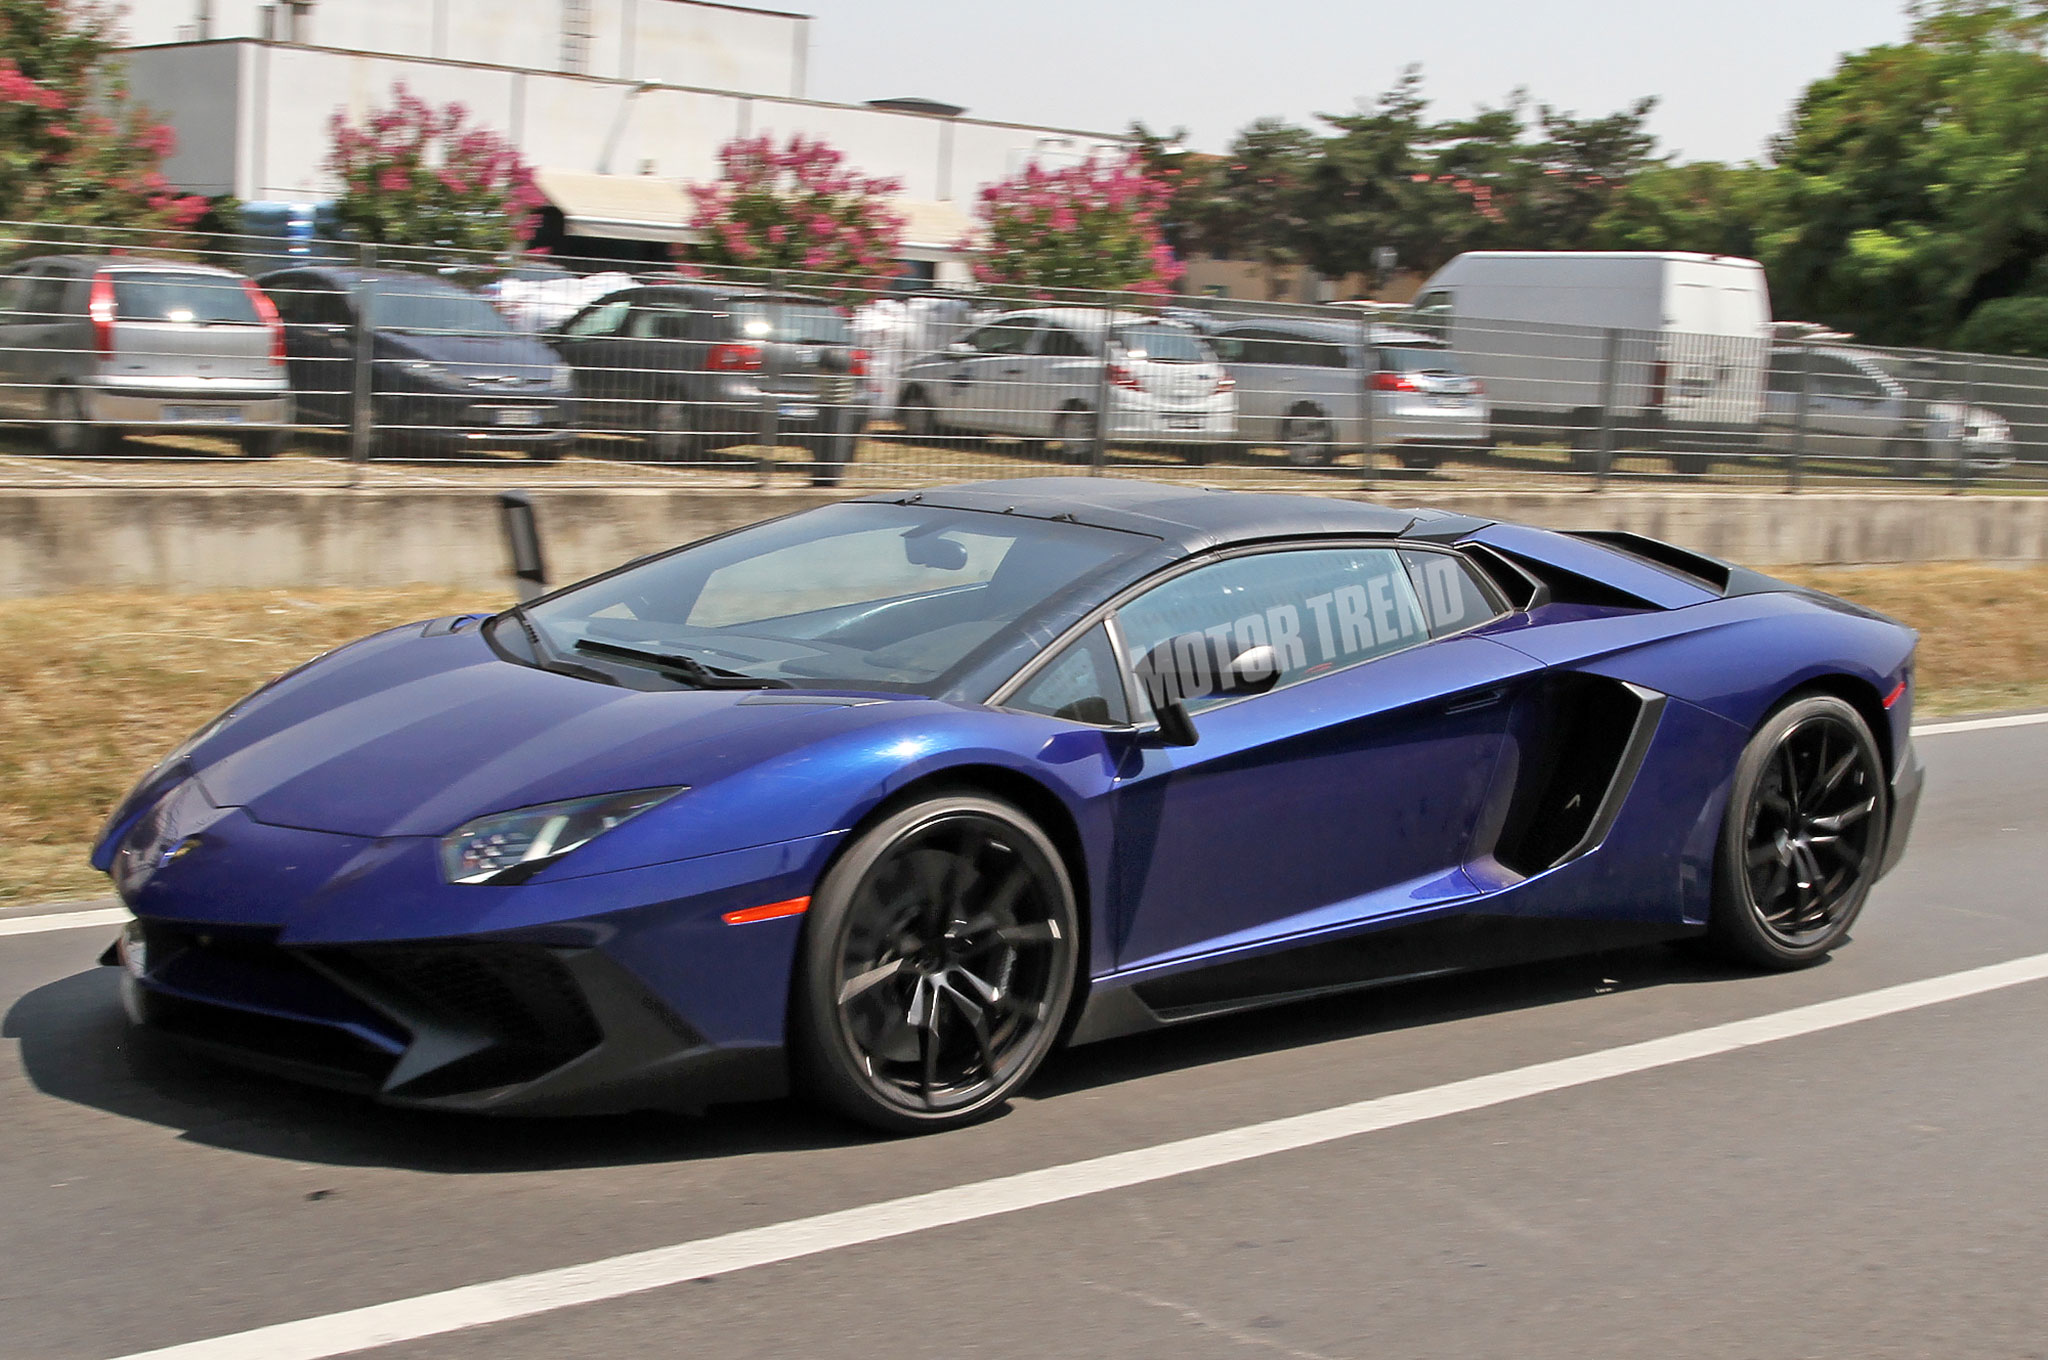 Spied! Lamborghini Aventador SV Roadster Exposes its Removable Roof